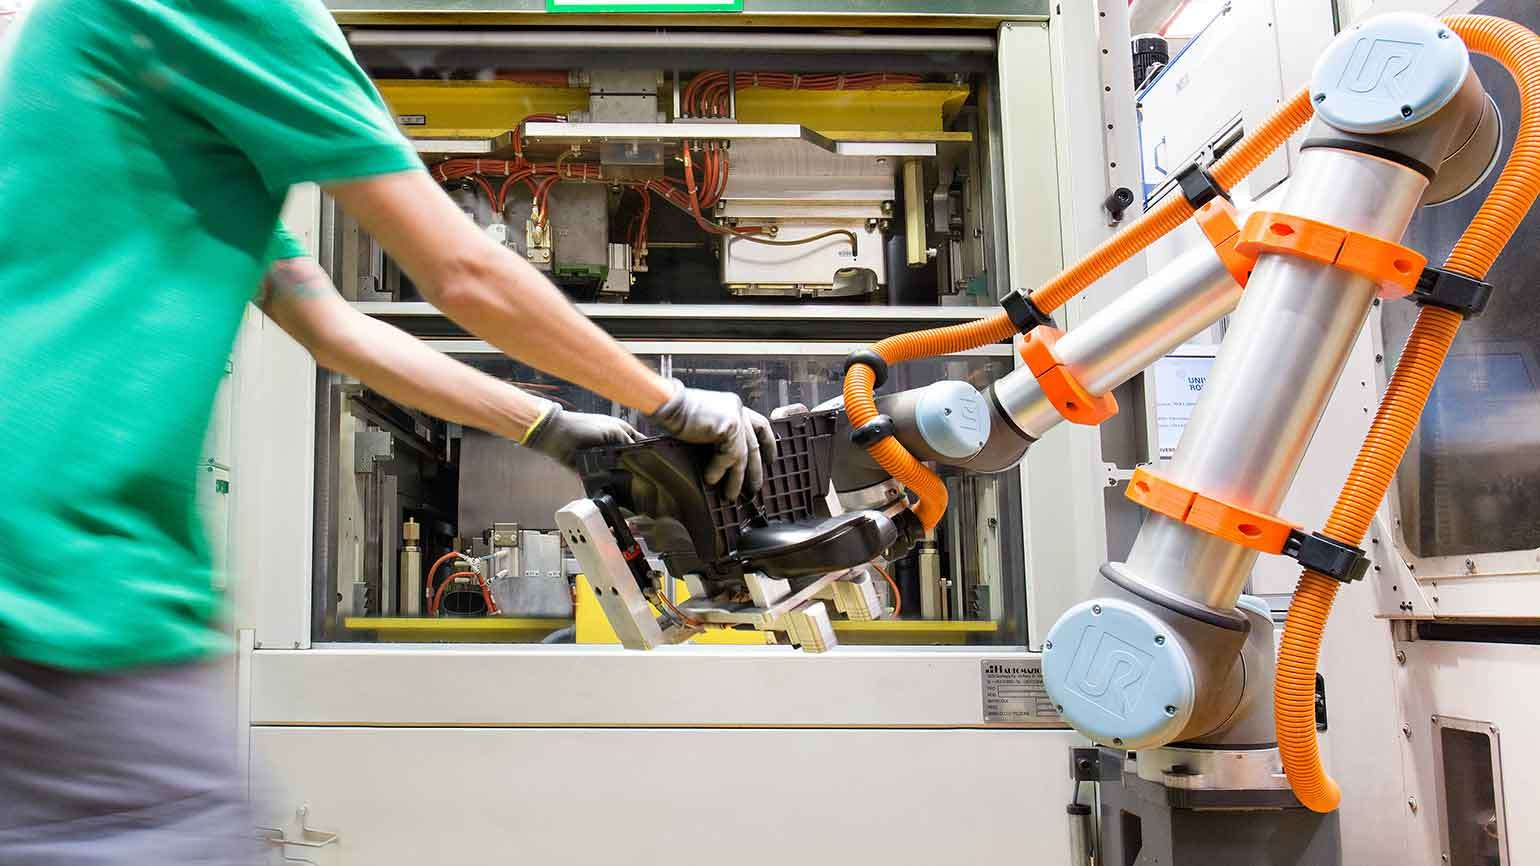 """""""Workers and collaborative robots optimizing production at MANN+HUMMEL"""" - Universal Robots via https://www.skyfish.com/"""